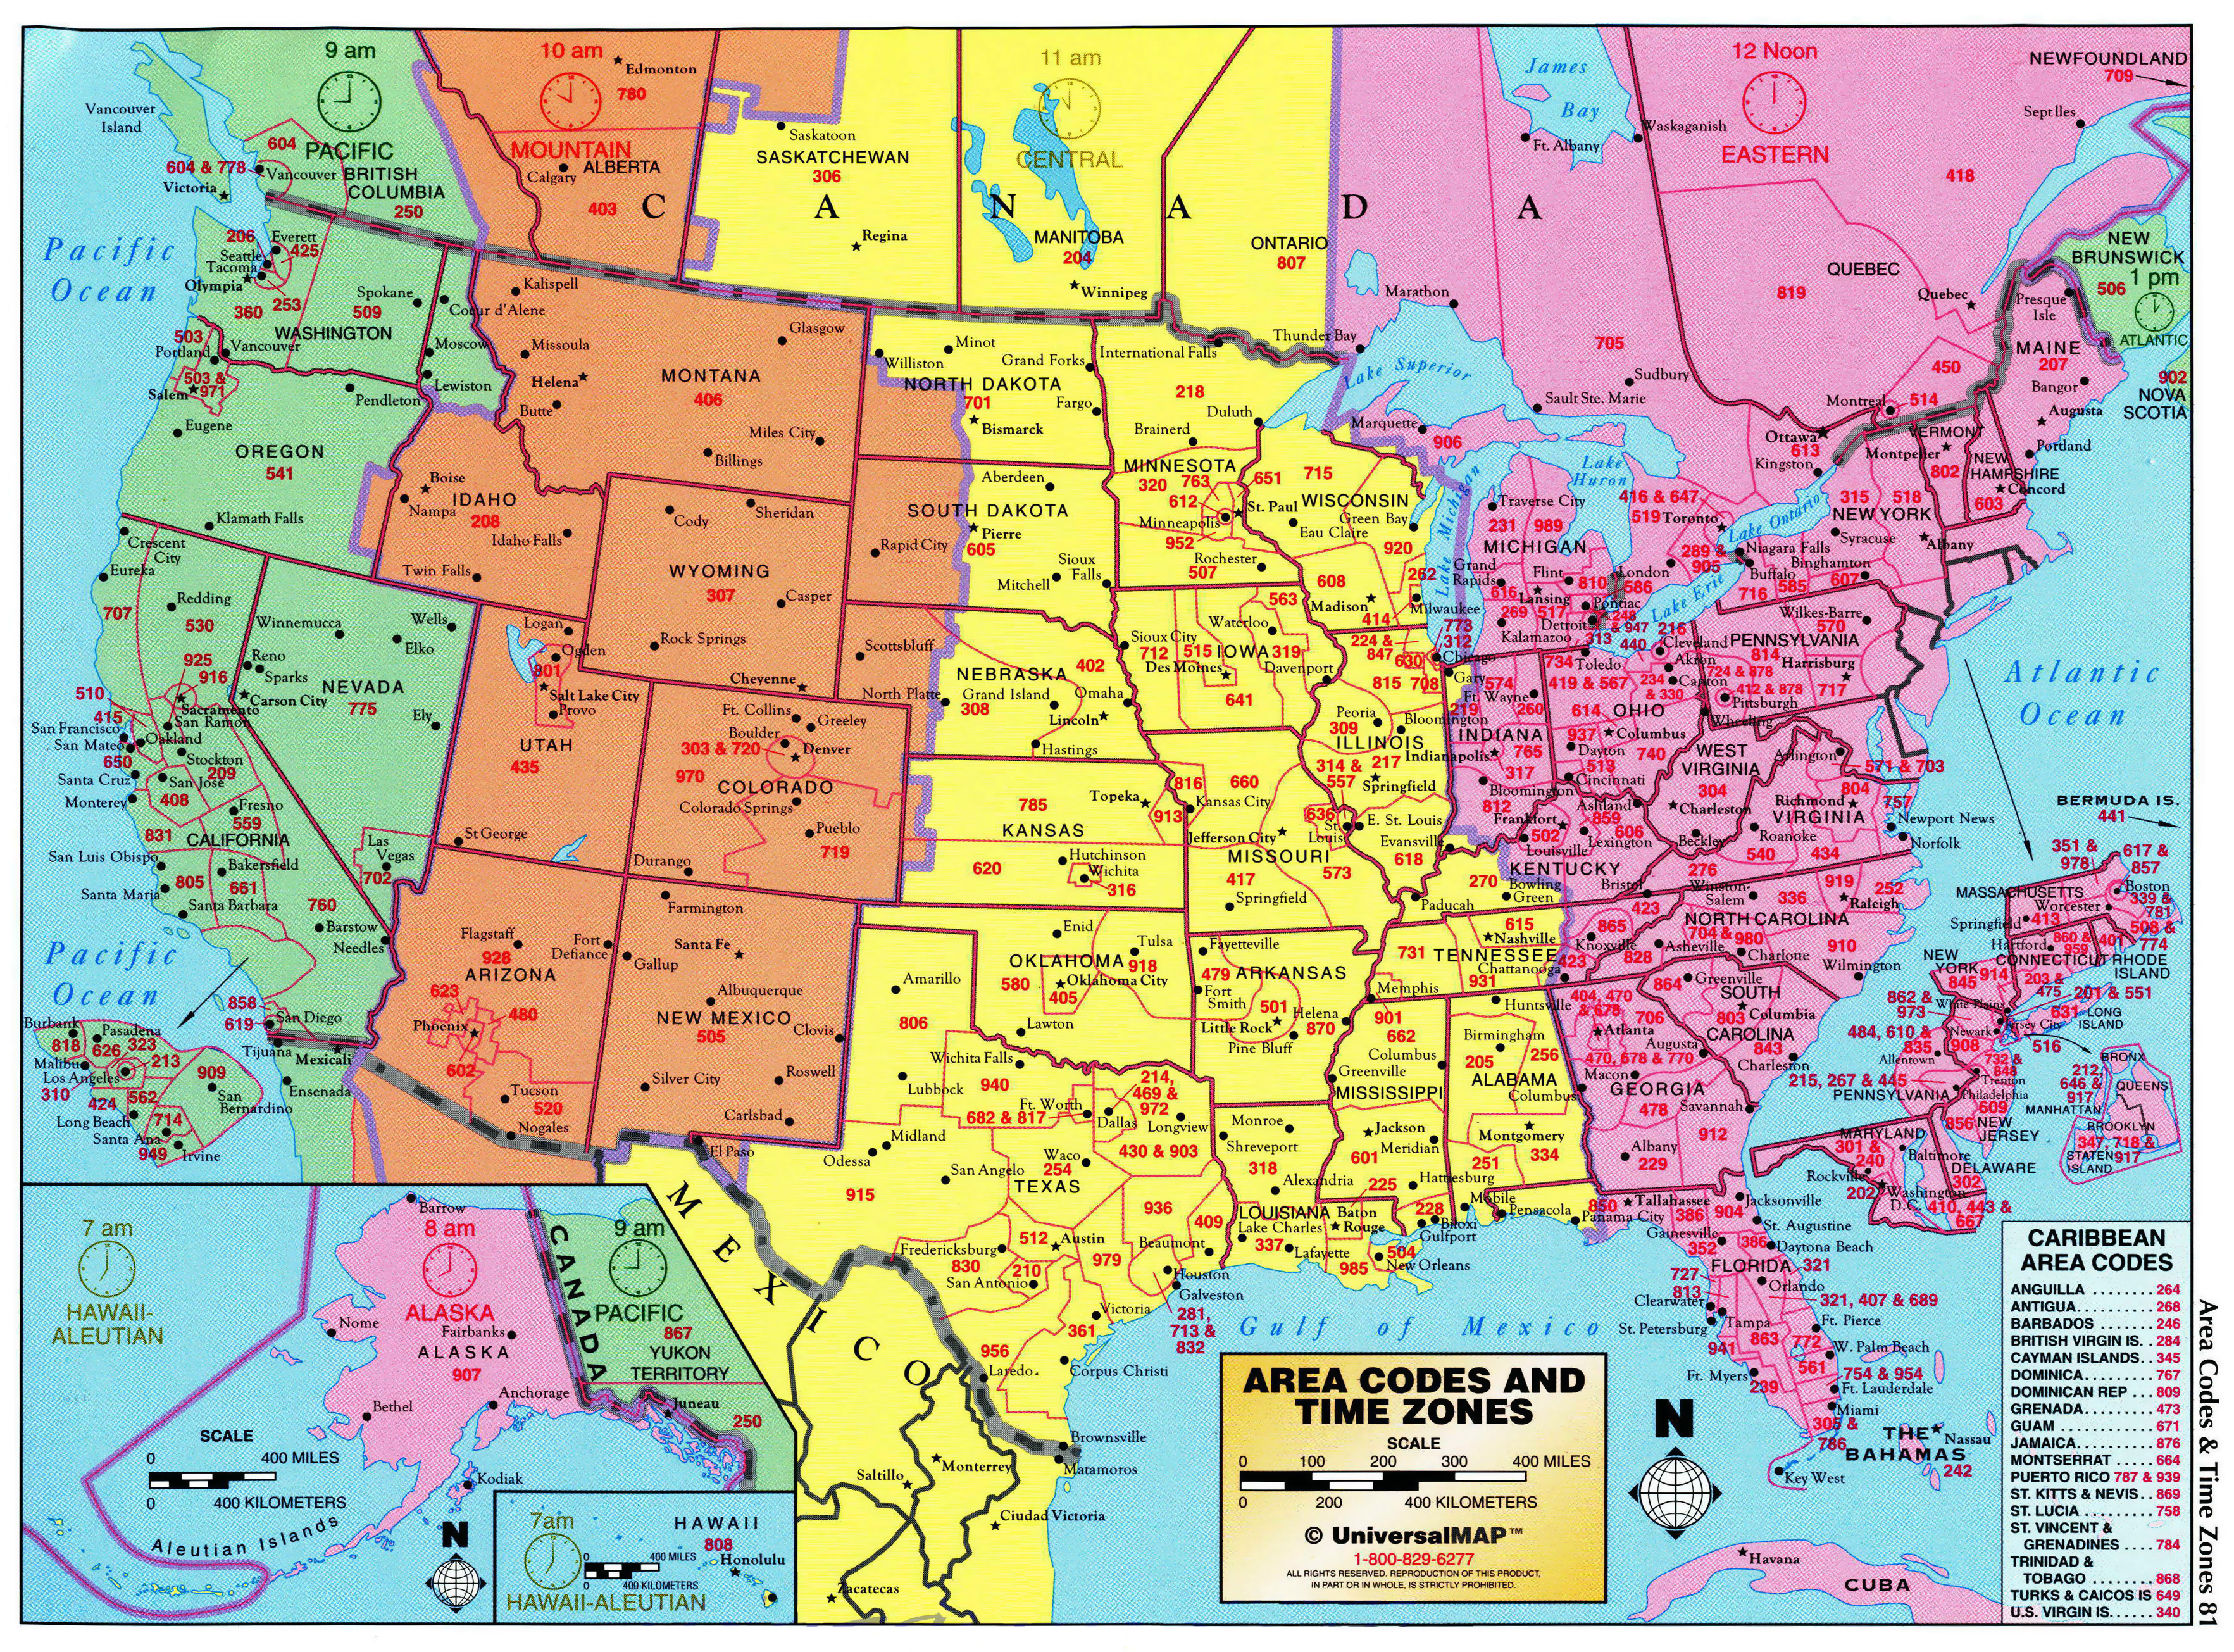 Large Detailed Map Of Area Codes And Time Zones Of The USA The - Detailed map of us